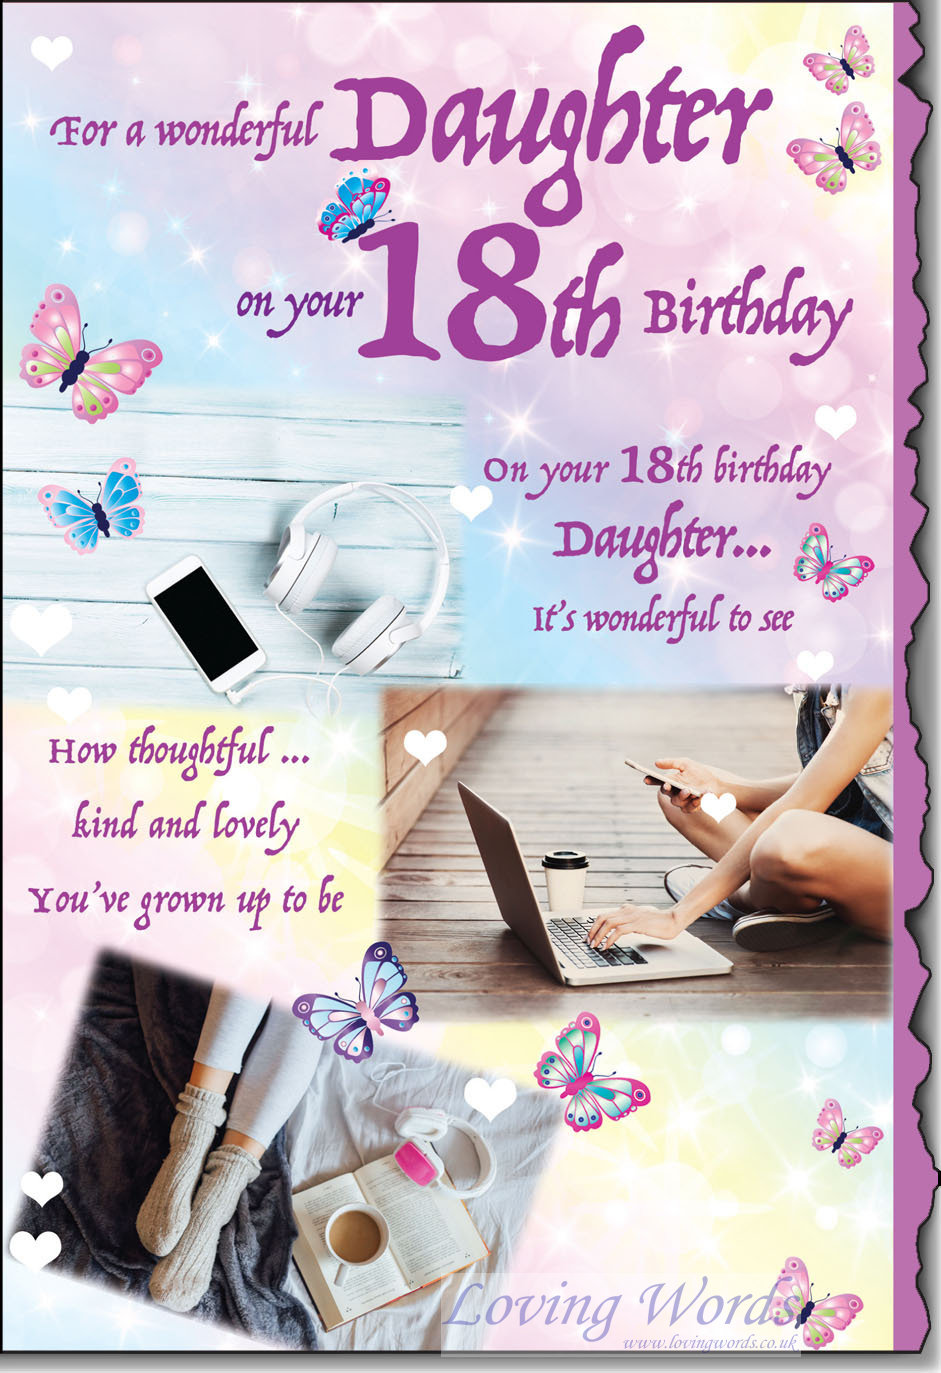 Greeting for 18th birthday gallery greeting card examples wonderful daughter 18th birthday greeting cards by loving words personalised greeting cards kristyandbryce gallery kristyandbryce Images